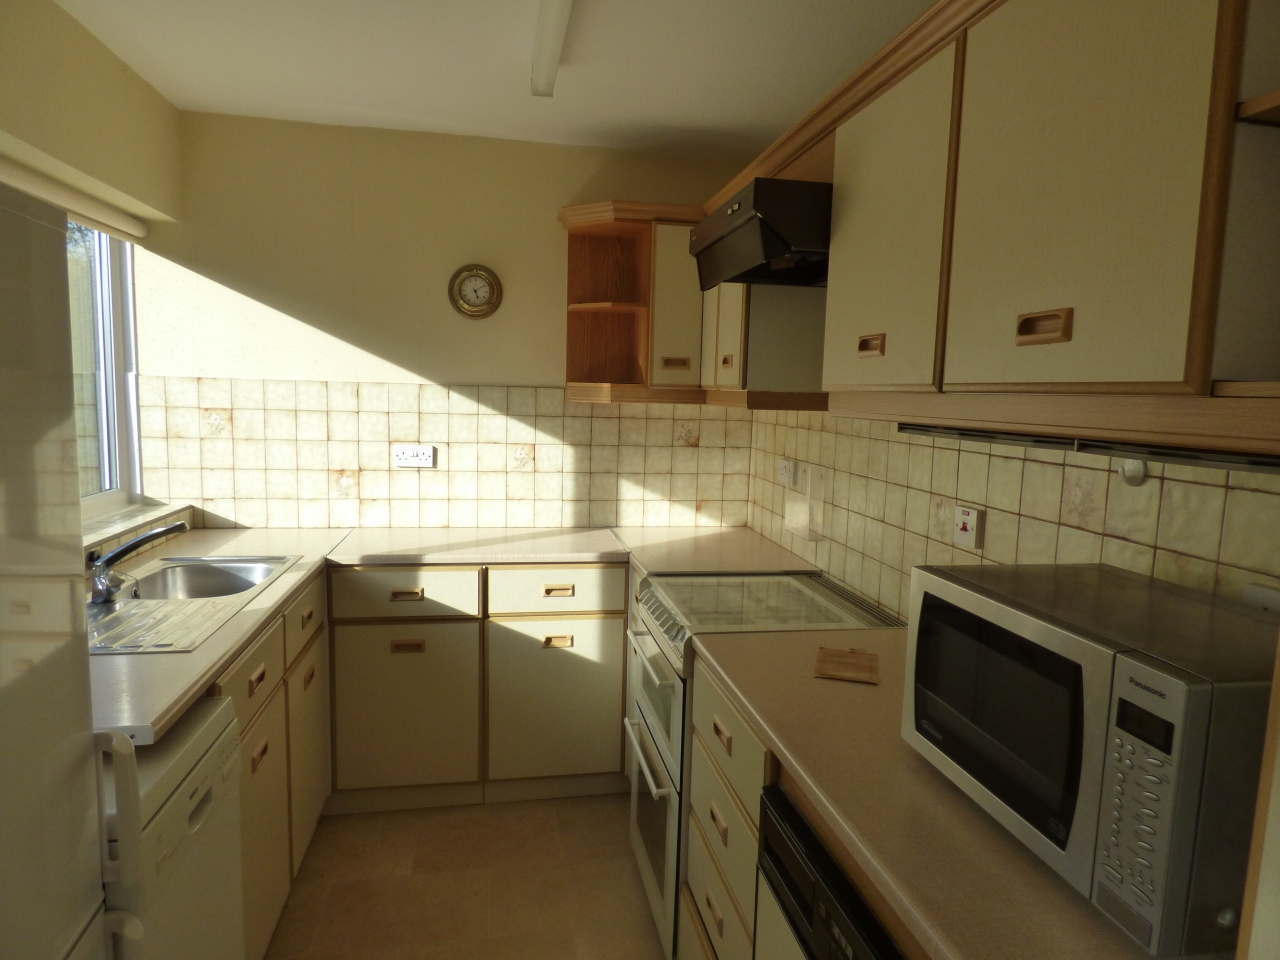 2 Bedroom Detached Bungalow Bungalow For Sale - Image 3